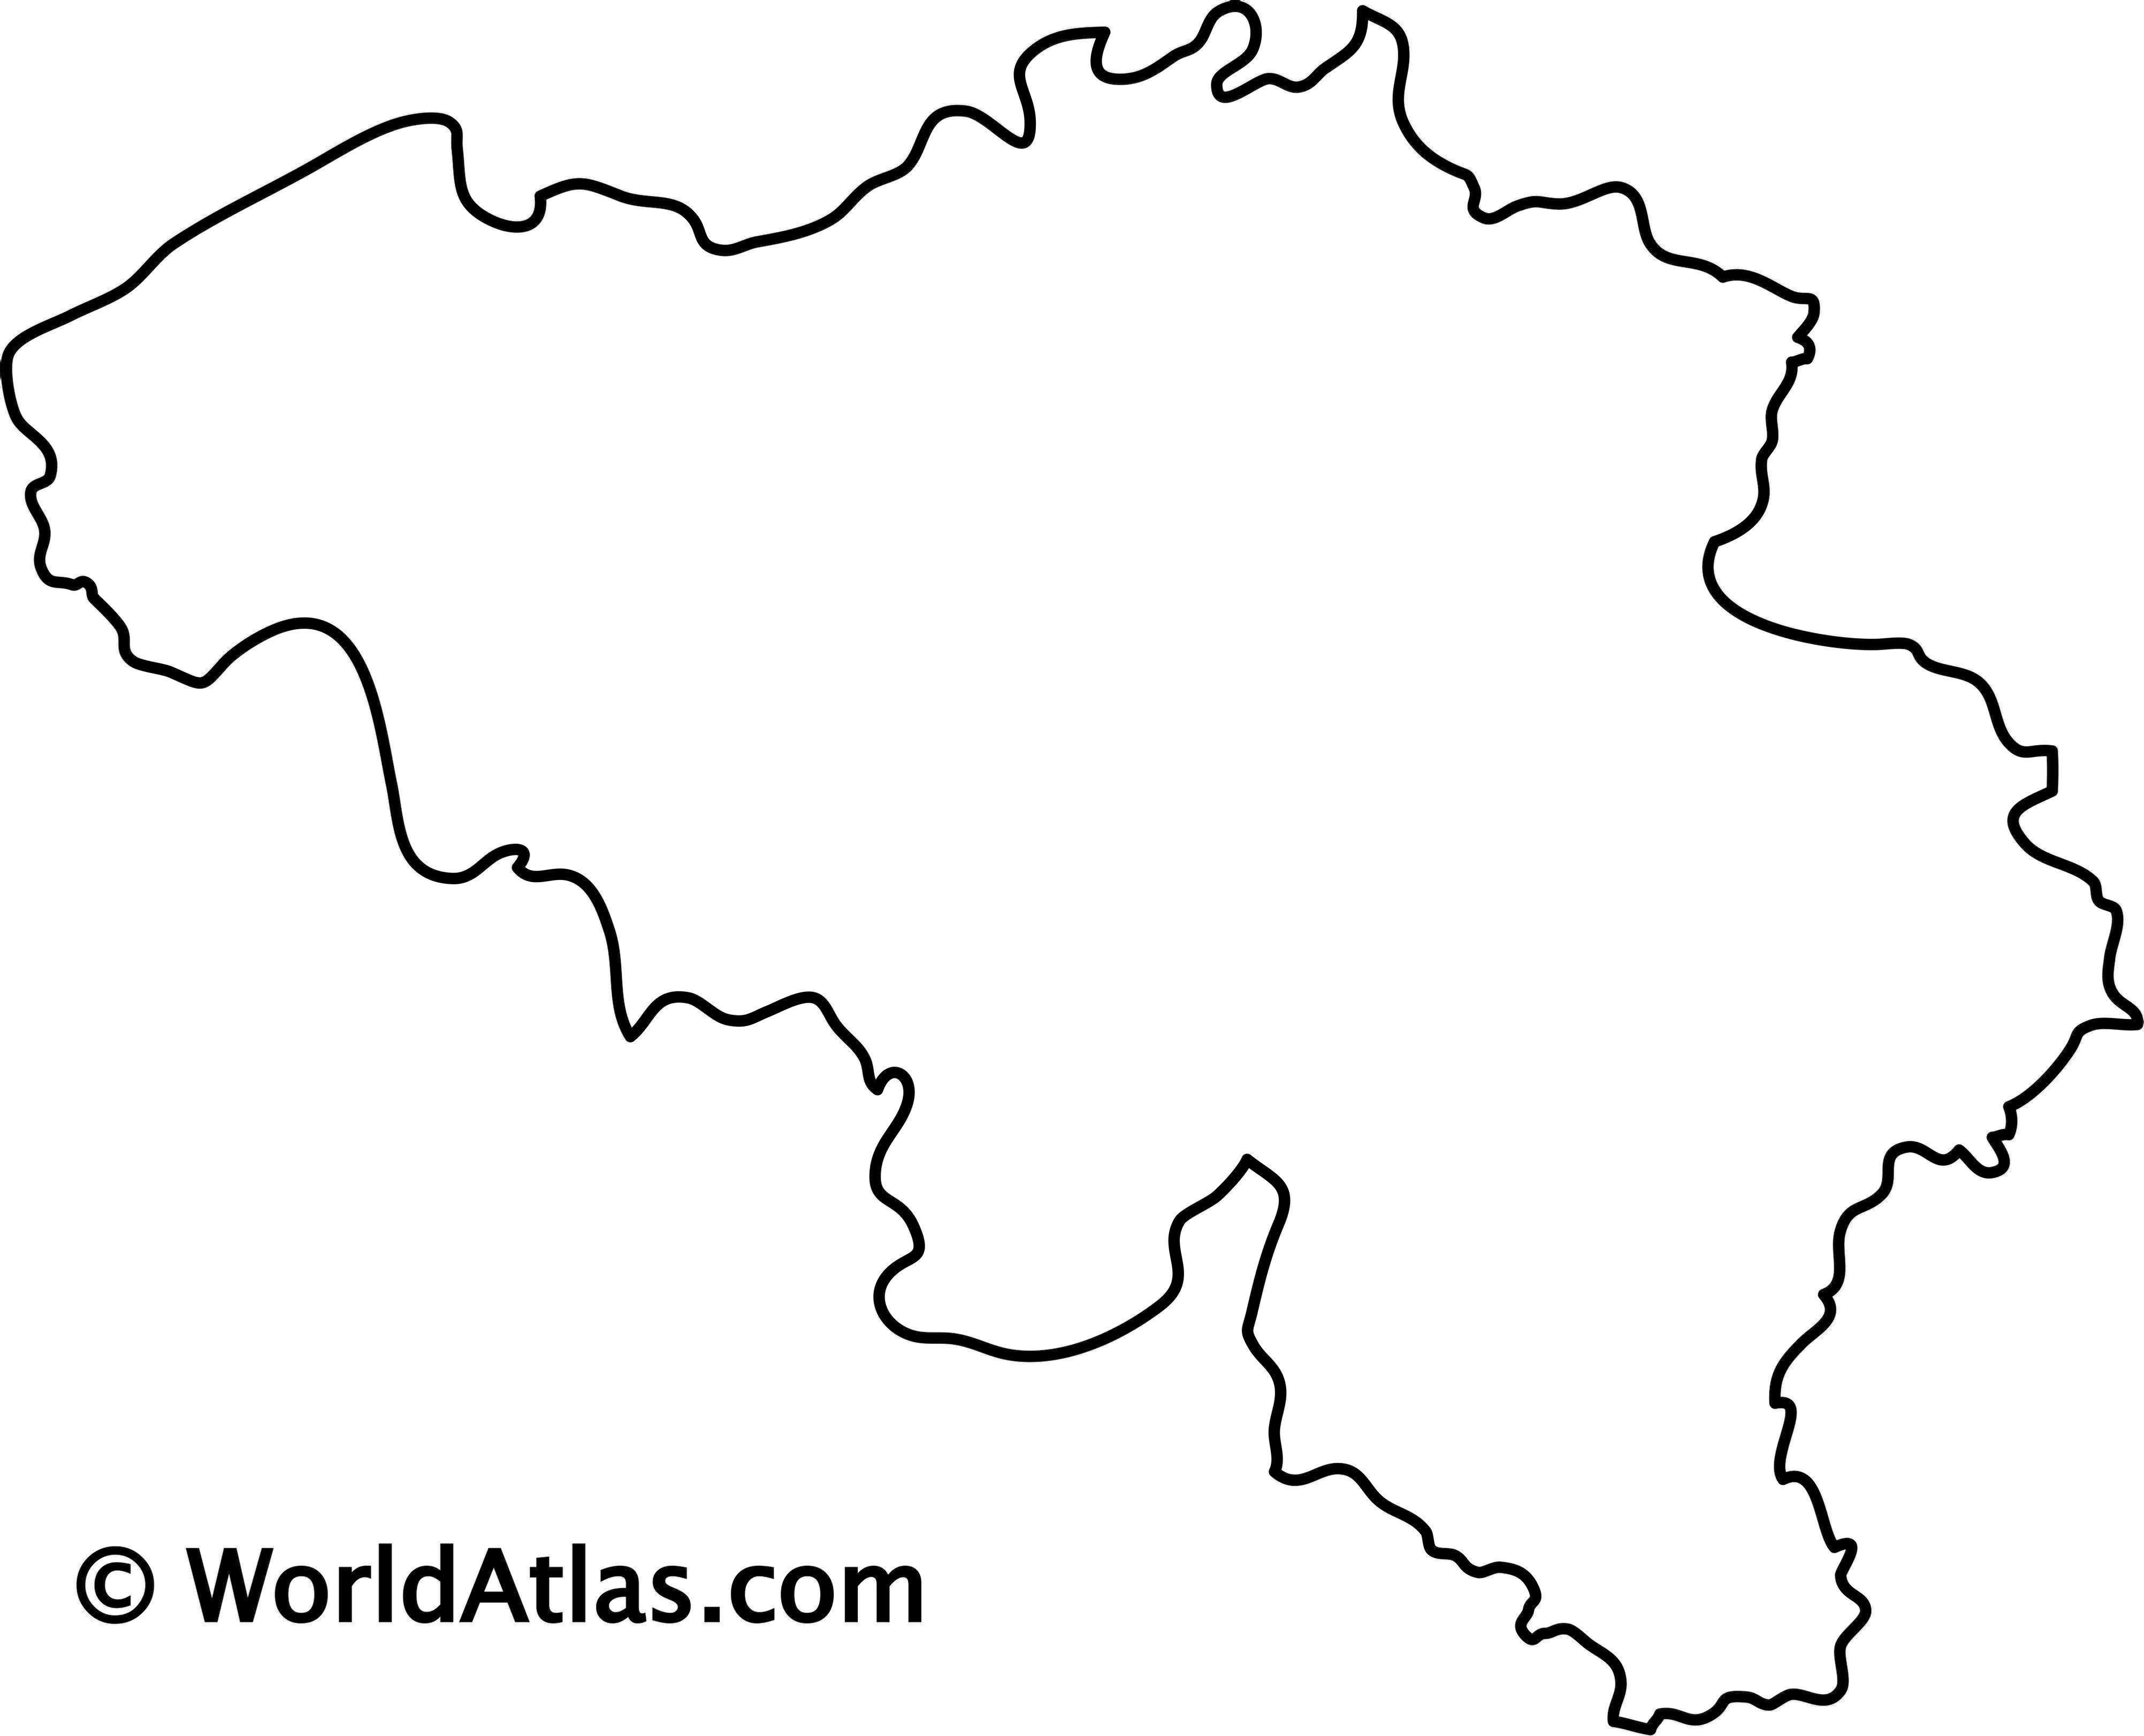 Blank outline map of Belgium